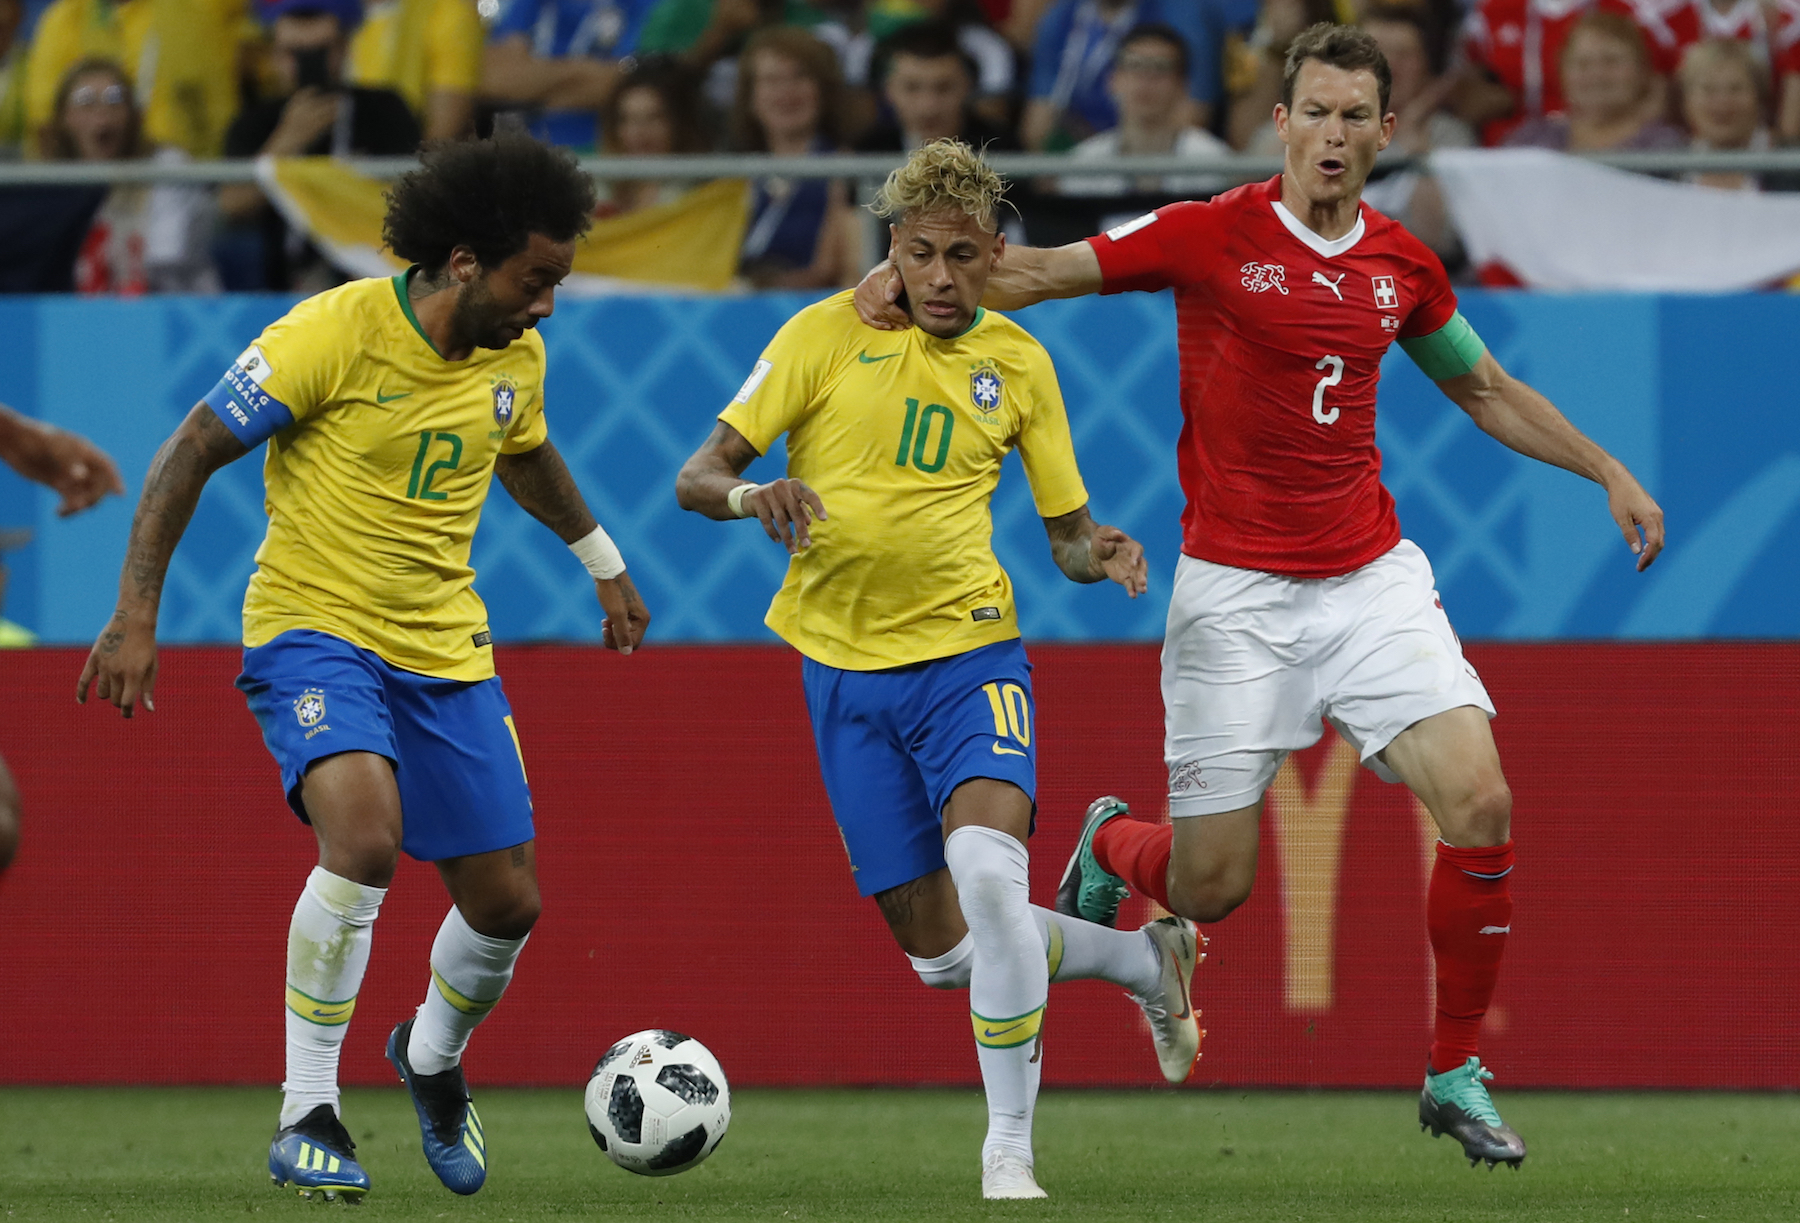 "<div class=""meta image-caption""><div class=""origin-logo origin-image ap""><span>AP</span></div><span class=""caption-text"">Brazil's Neymar, center, duels for the ball with Switzerland's Stephan Lichtsteiner, right, during the group E match between Brazil and Switzerland at the 2018 soccer World Cup. (AP Photo/Darko Vojinovic)</span></div>"